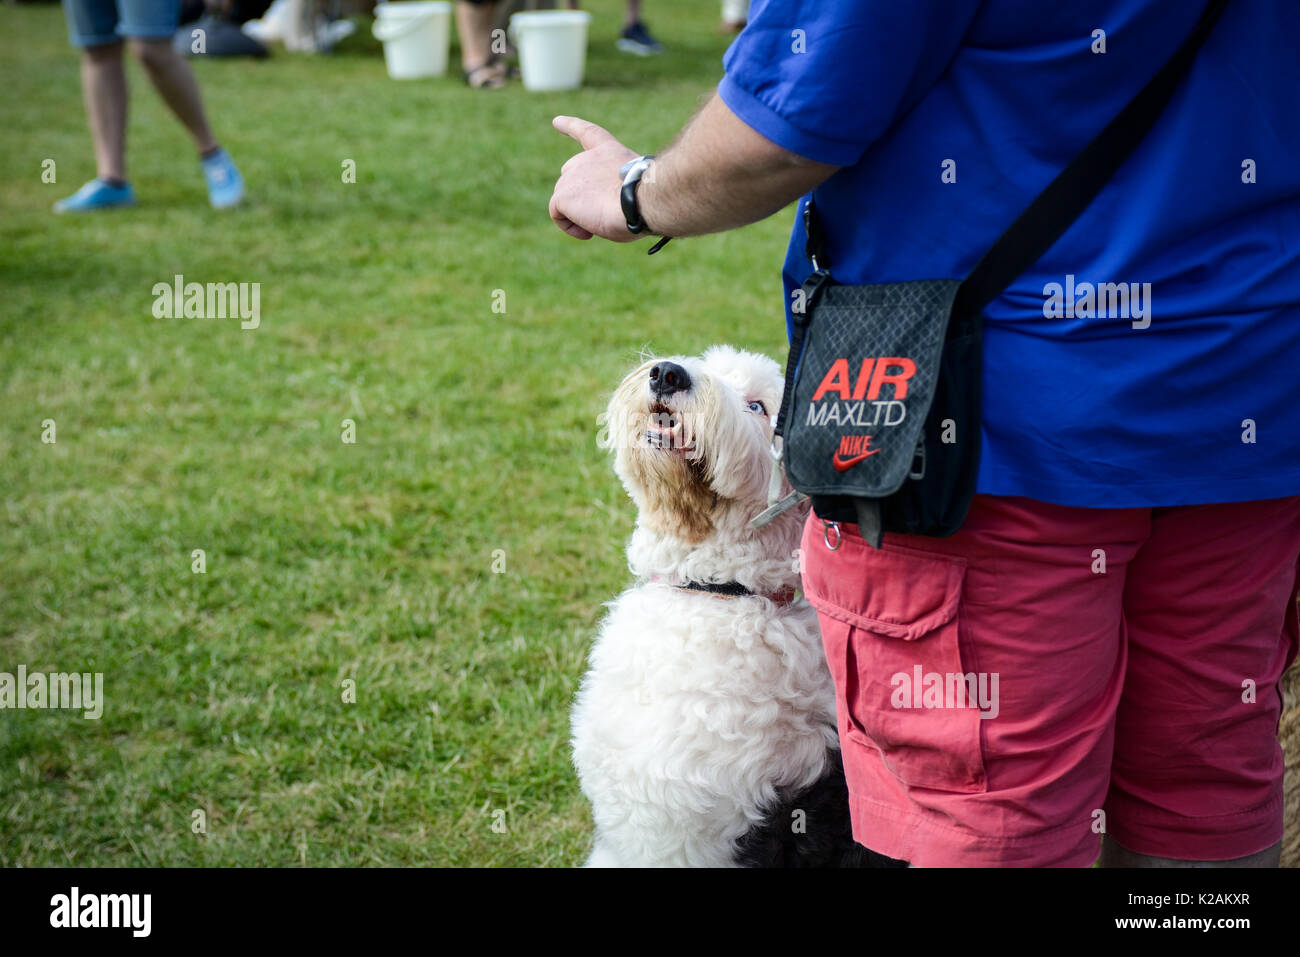 A man instructs his old english sheep dog to stay during a village dog show in England. - Stock Image